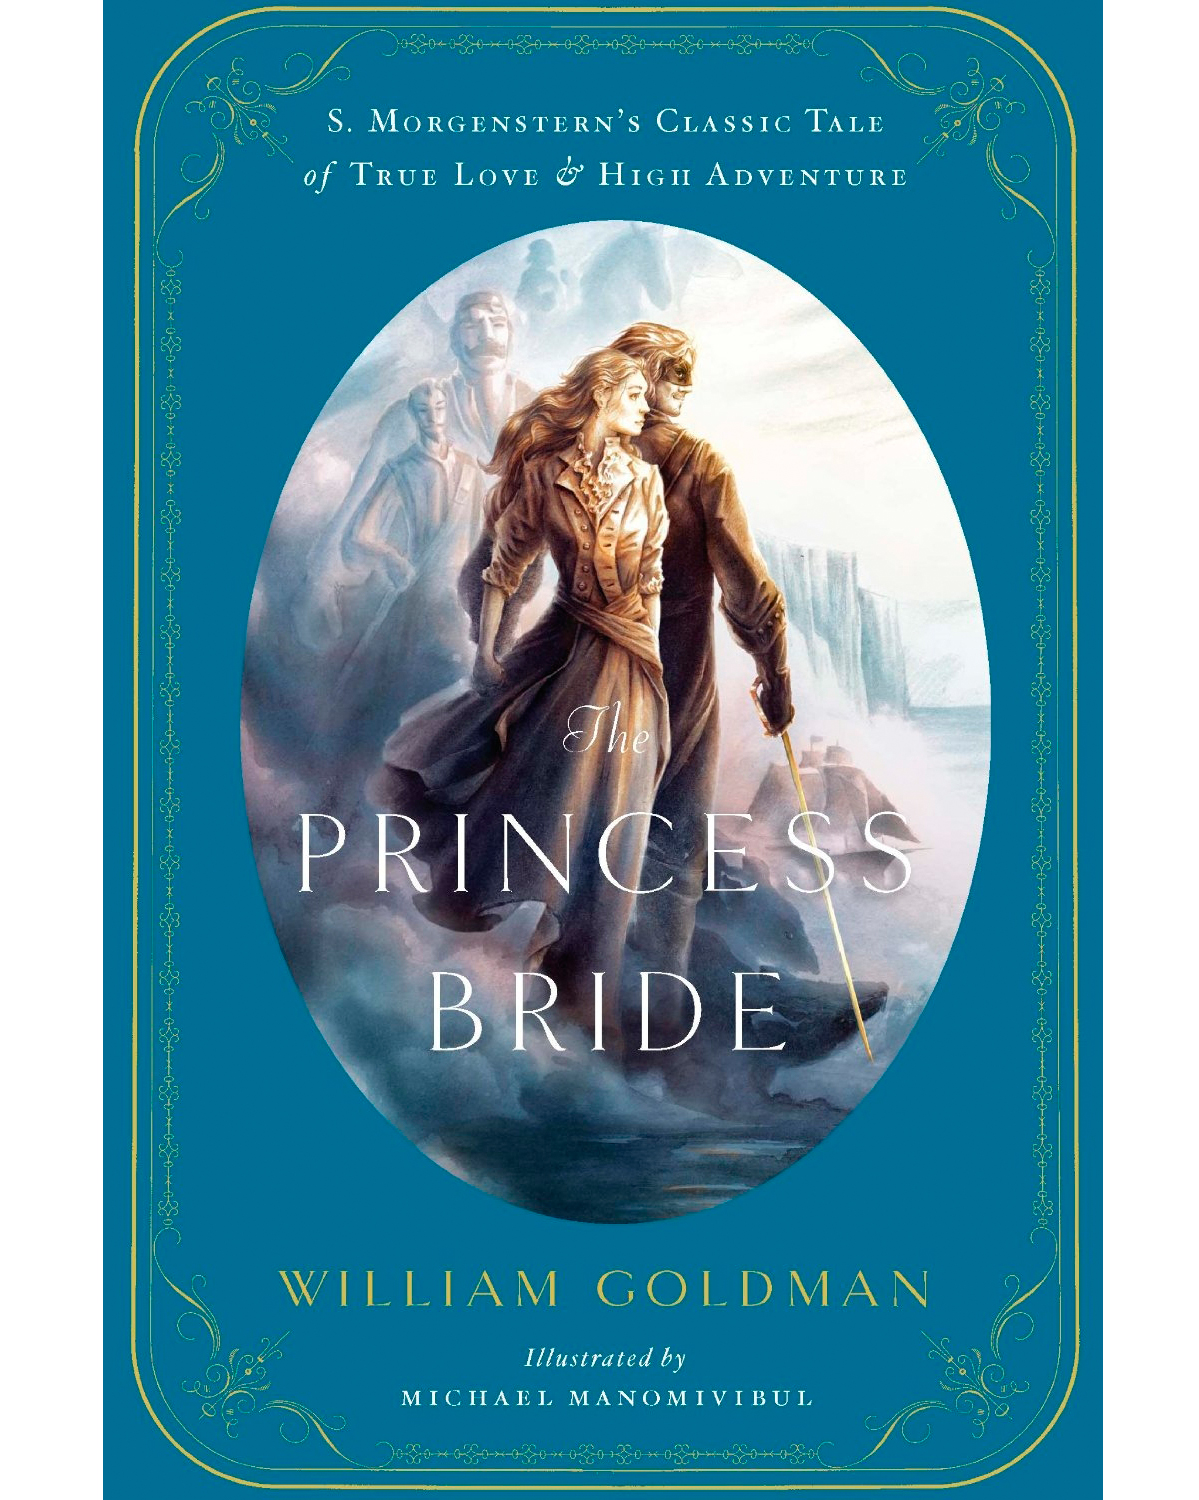 """The Princess Bride"" by William Goldman"